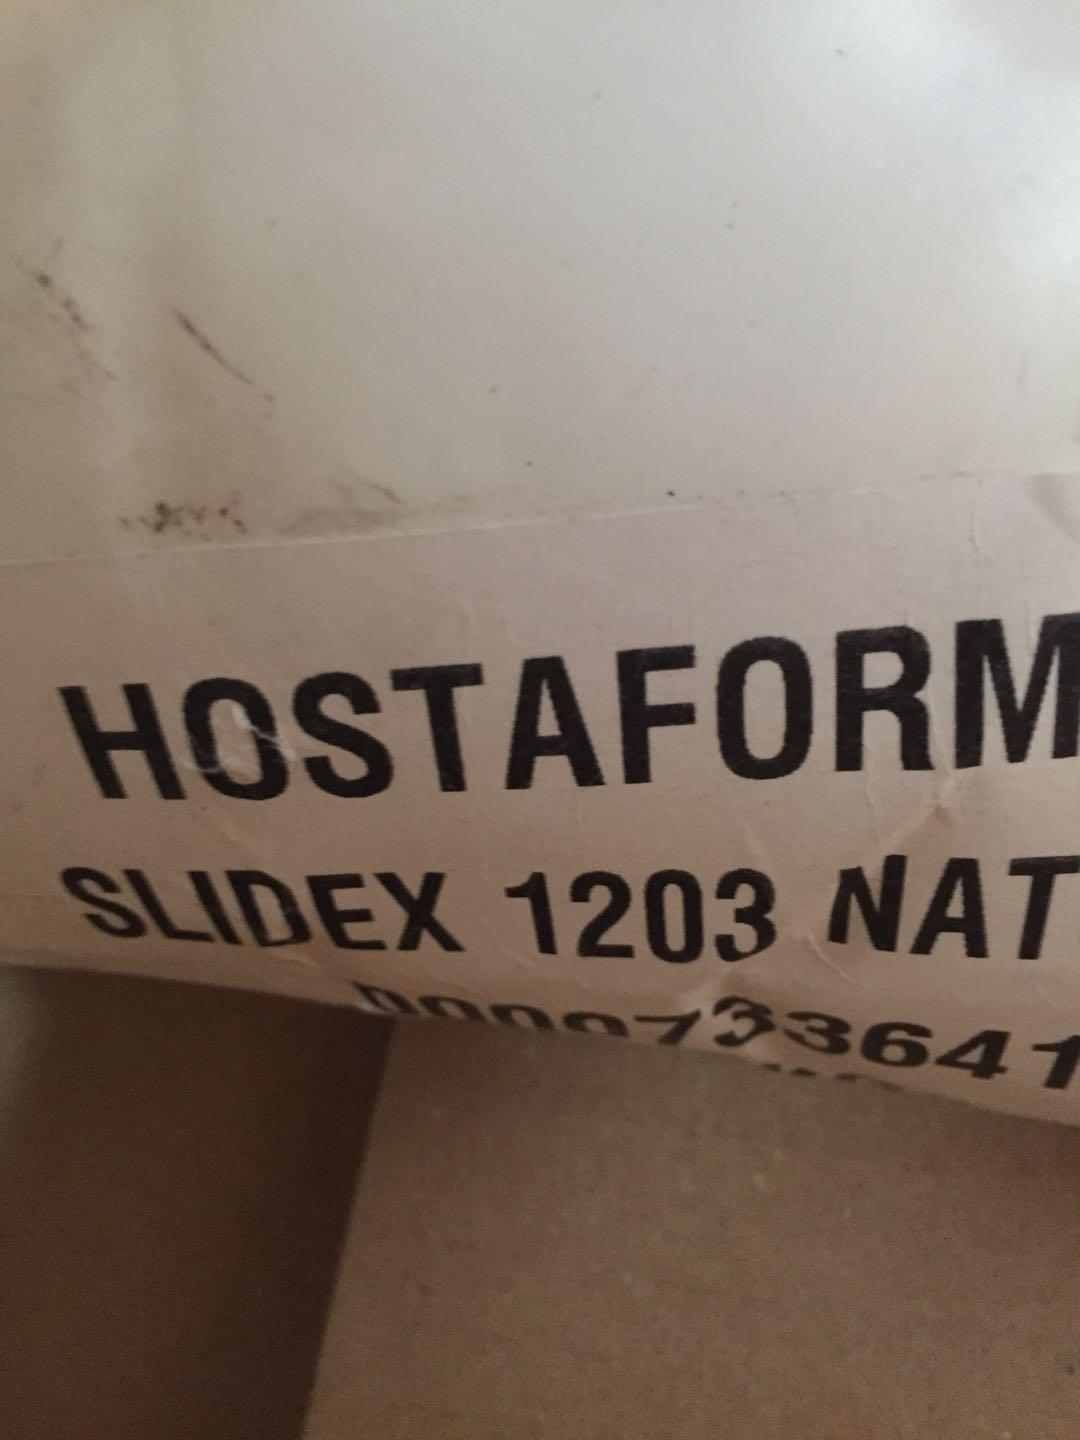 Hostaform MT SlideX 1203